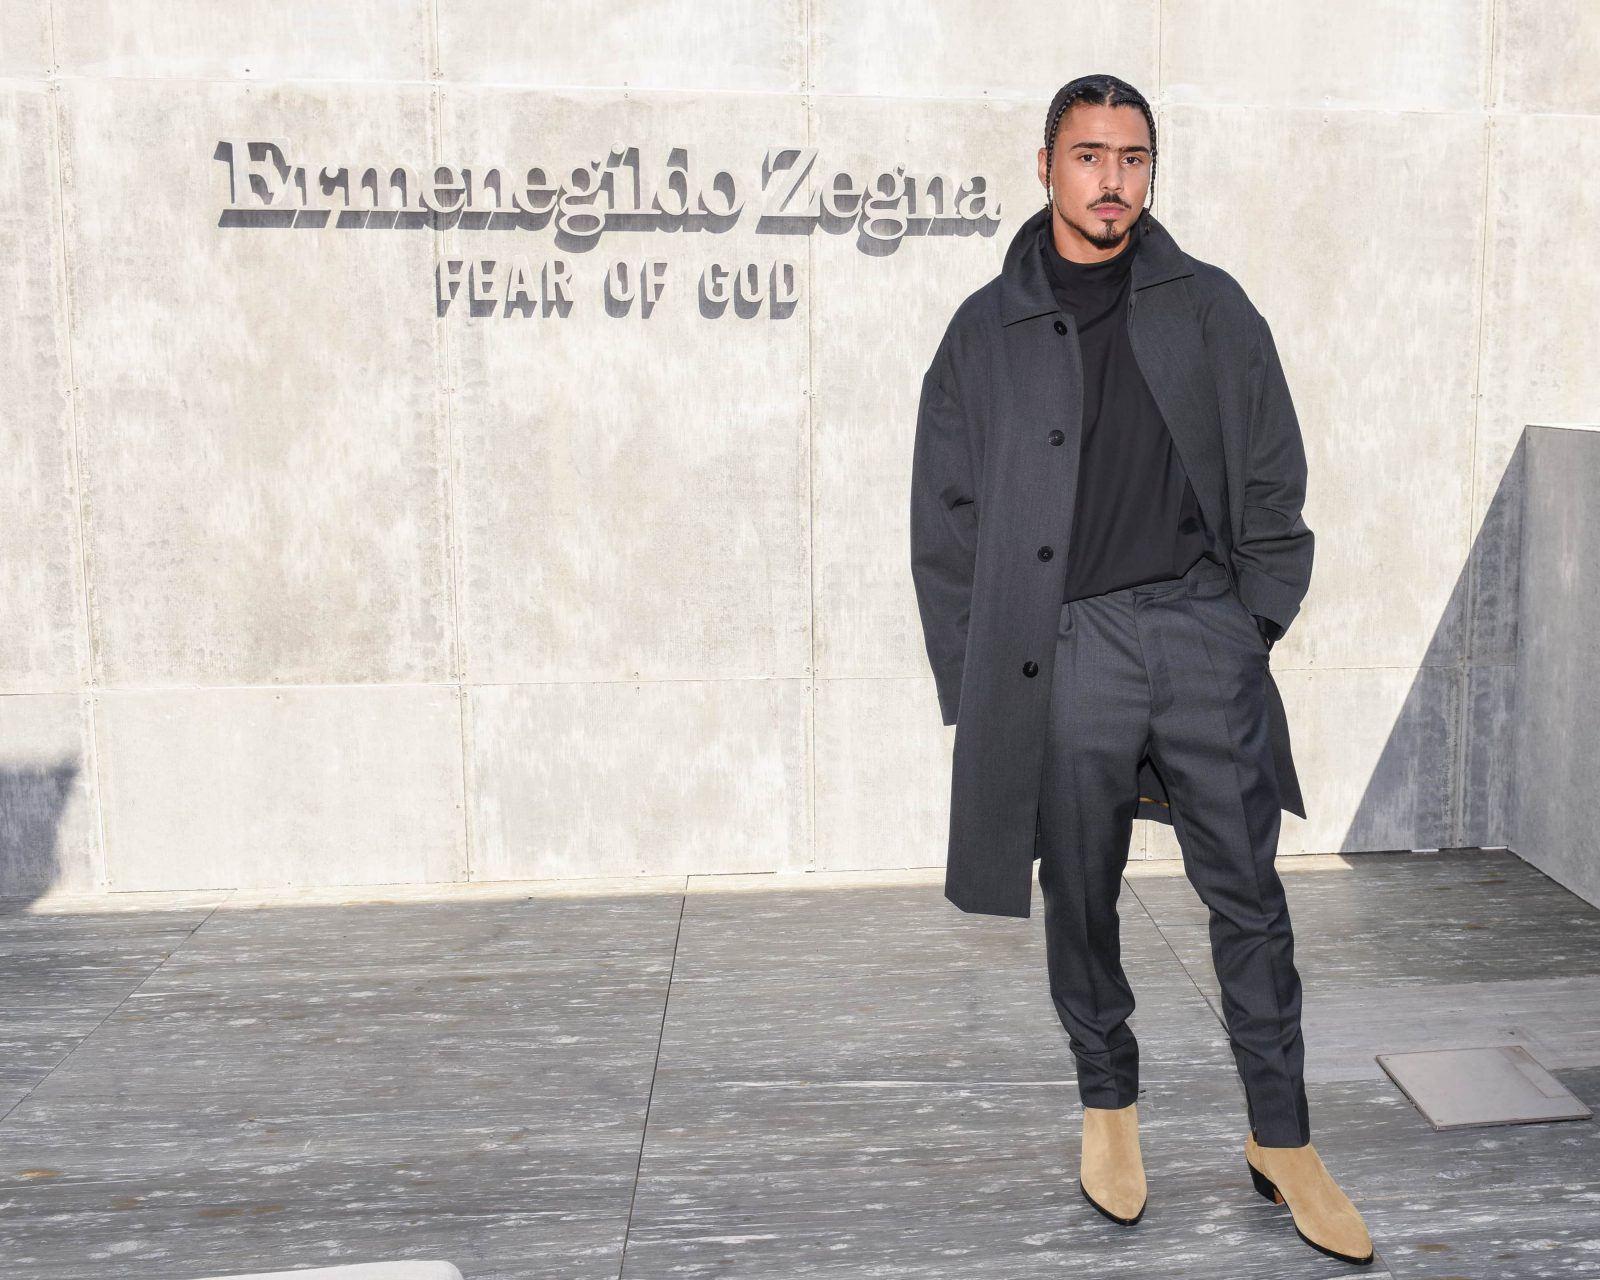 Quincy x fear of god x zegna